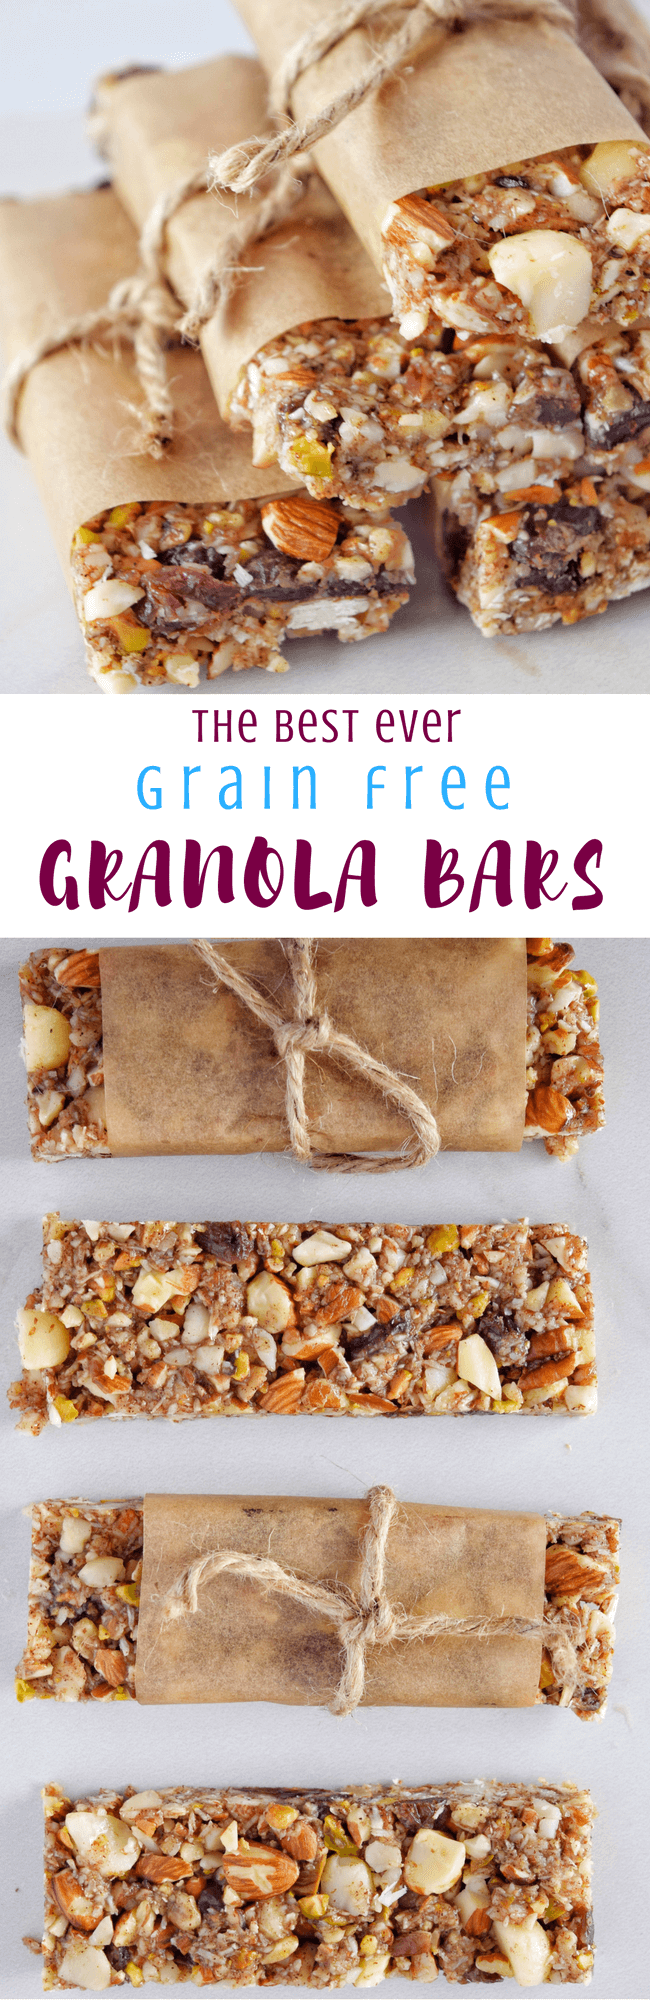 Best Ever Grain Free Granola Bars | Personally Paleo